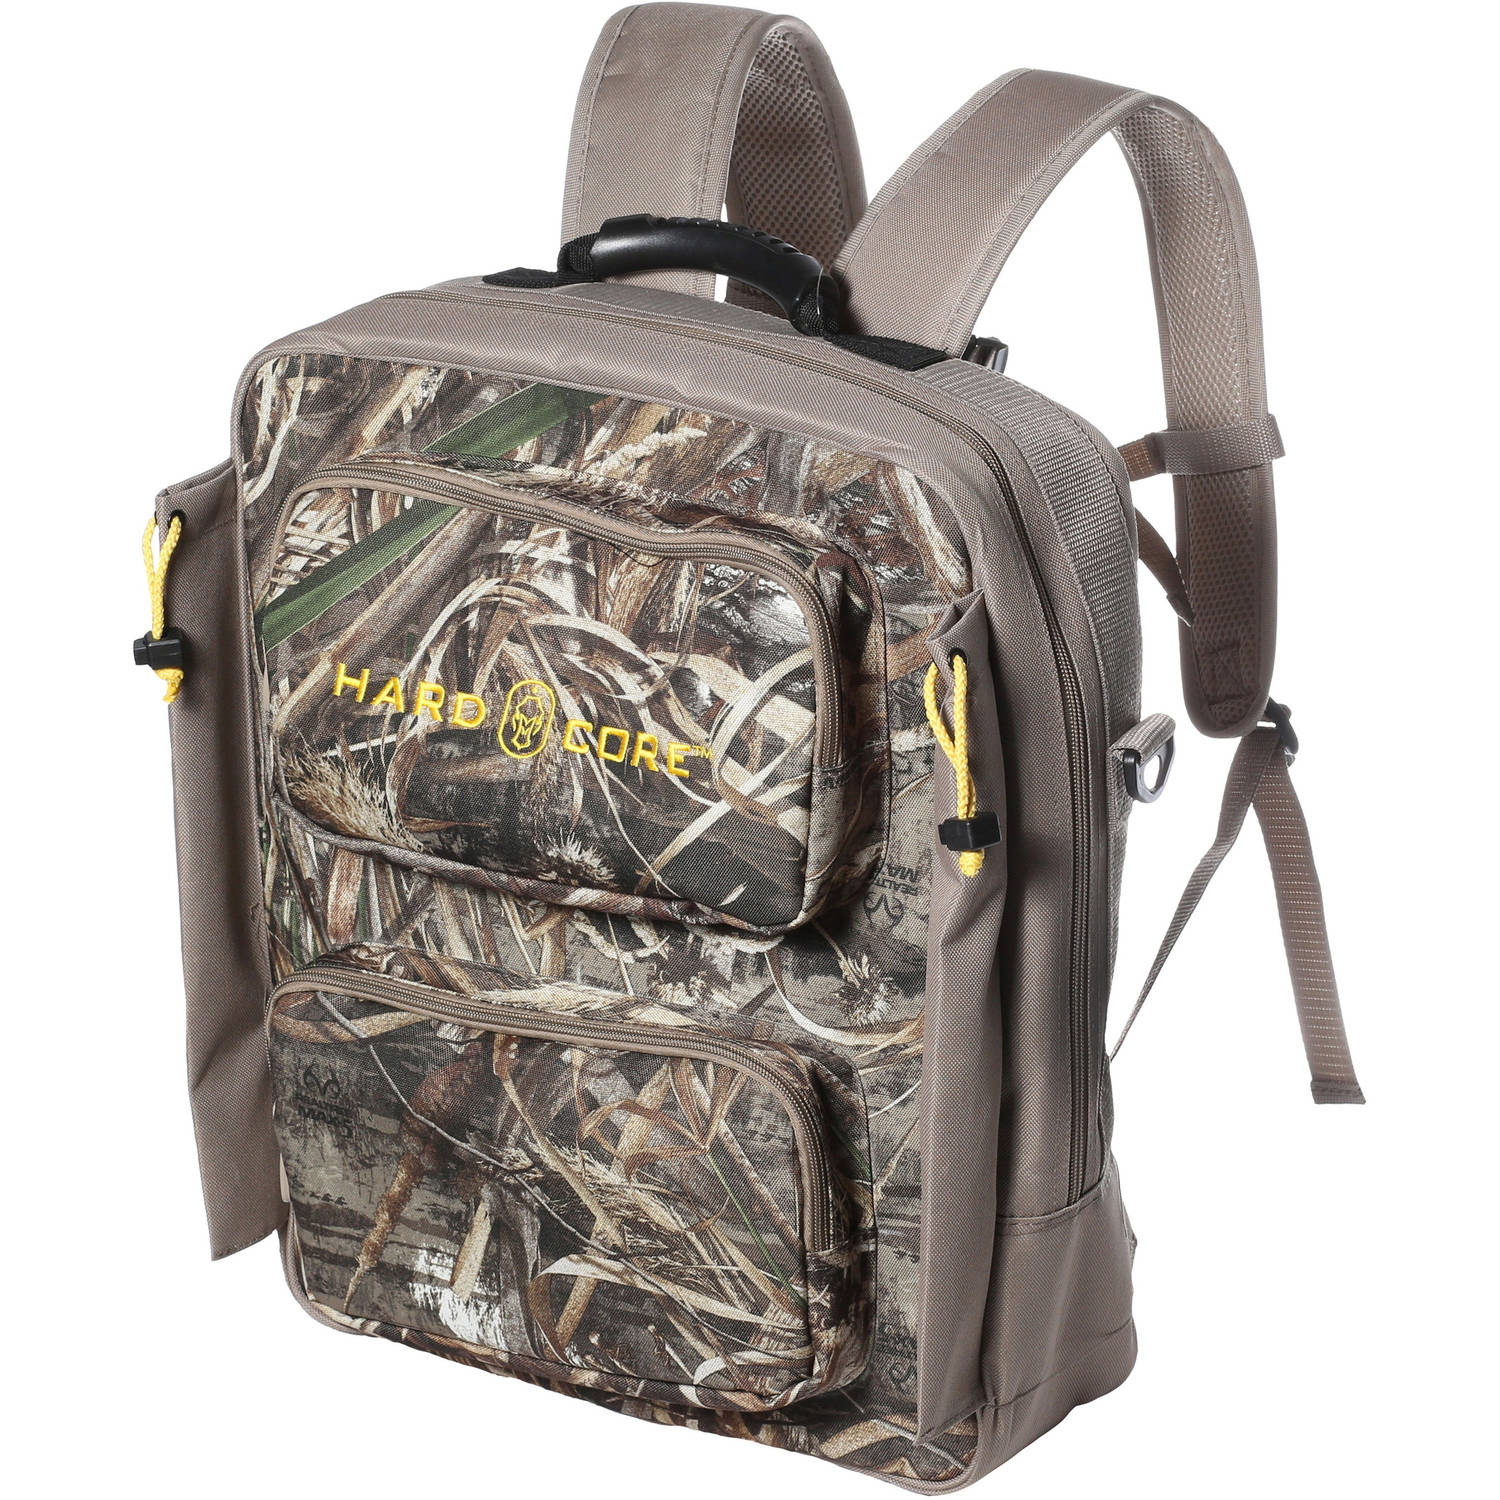 Hard Core Brands Spinning Wing Decoy Bag